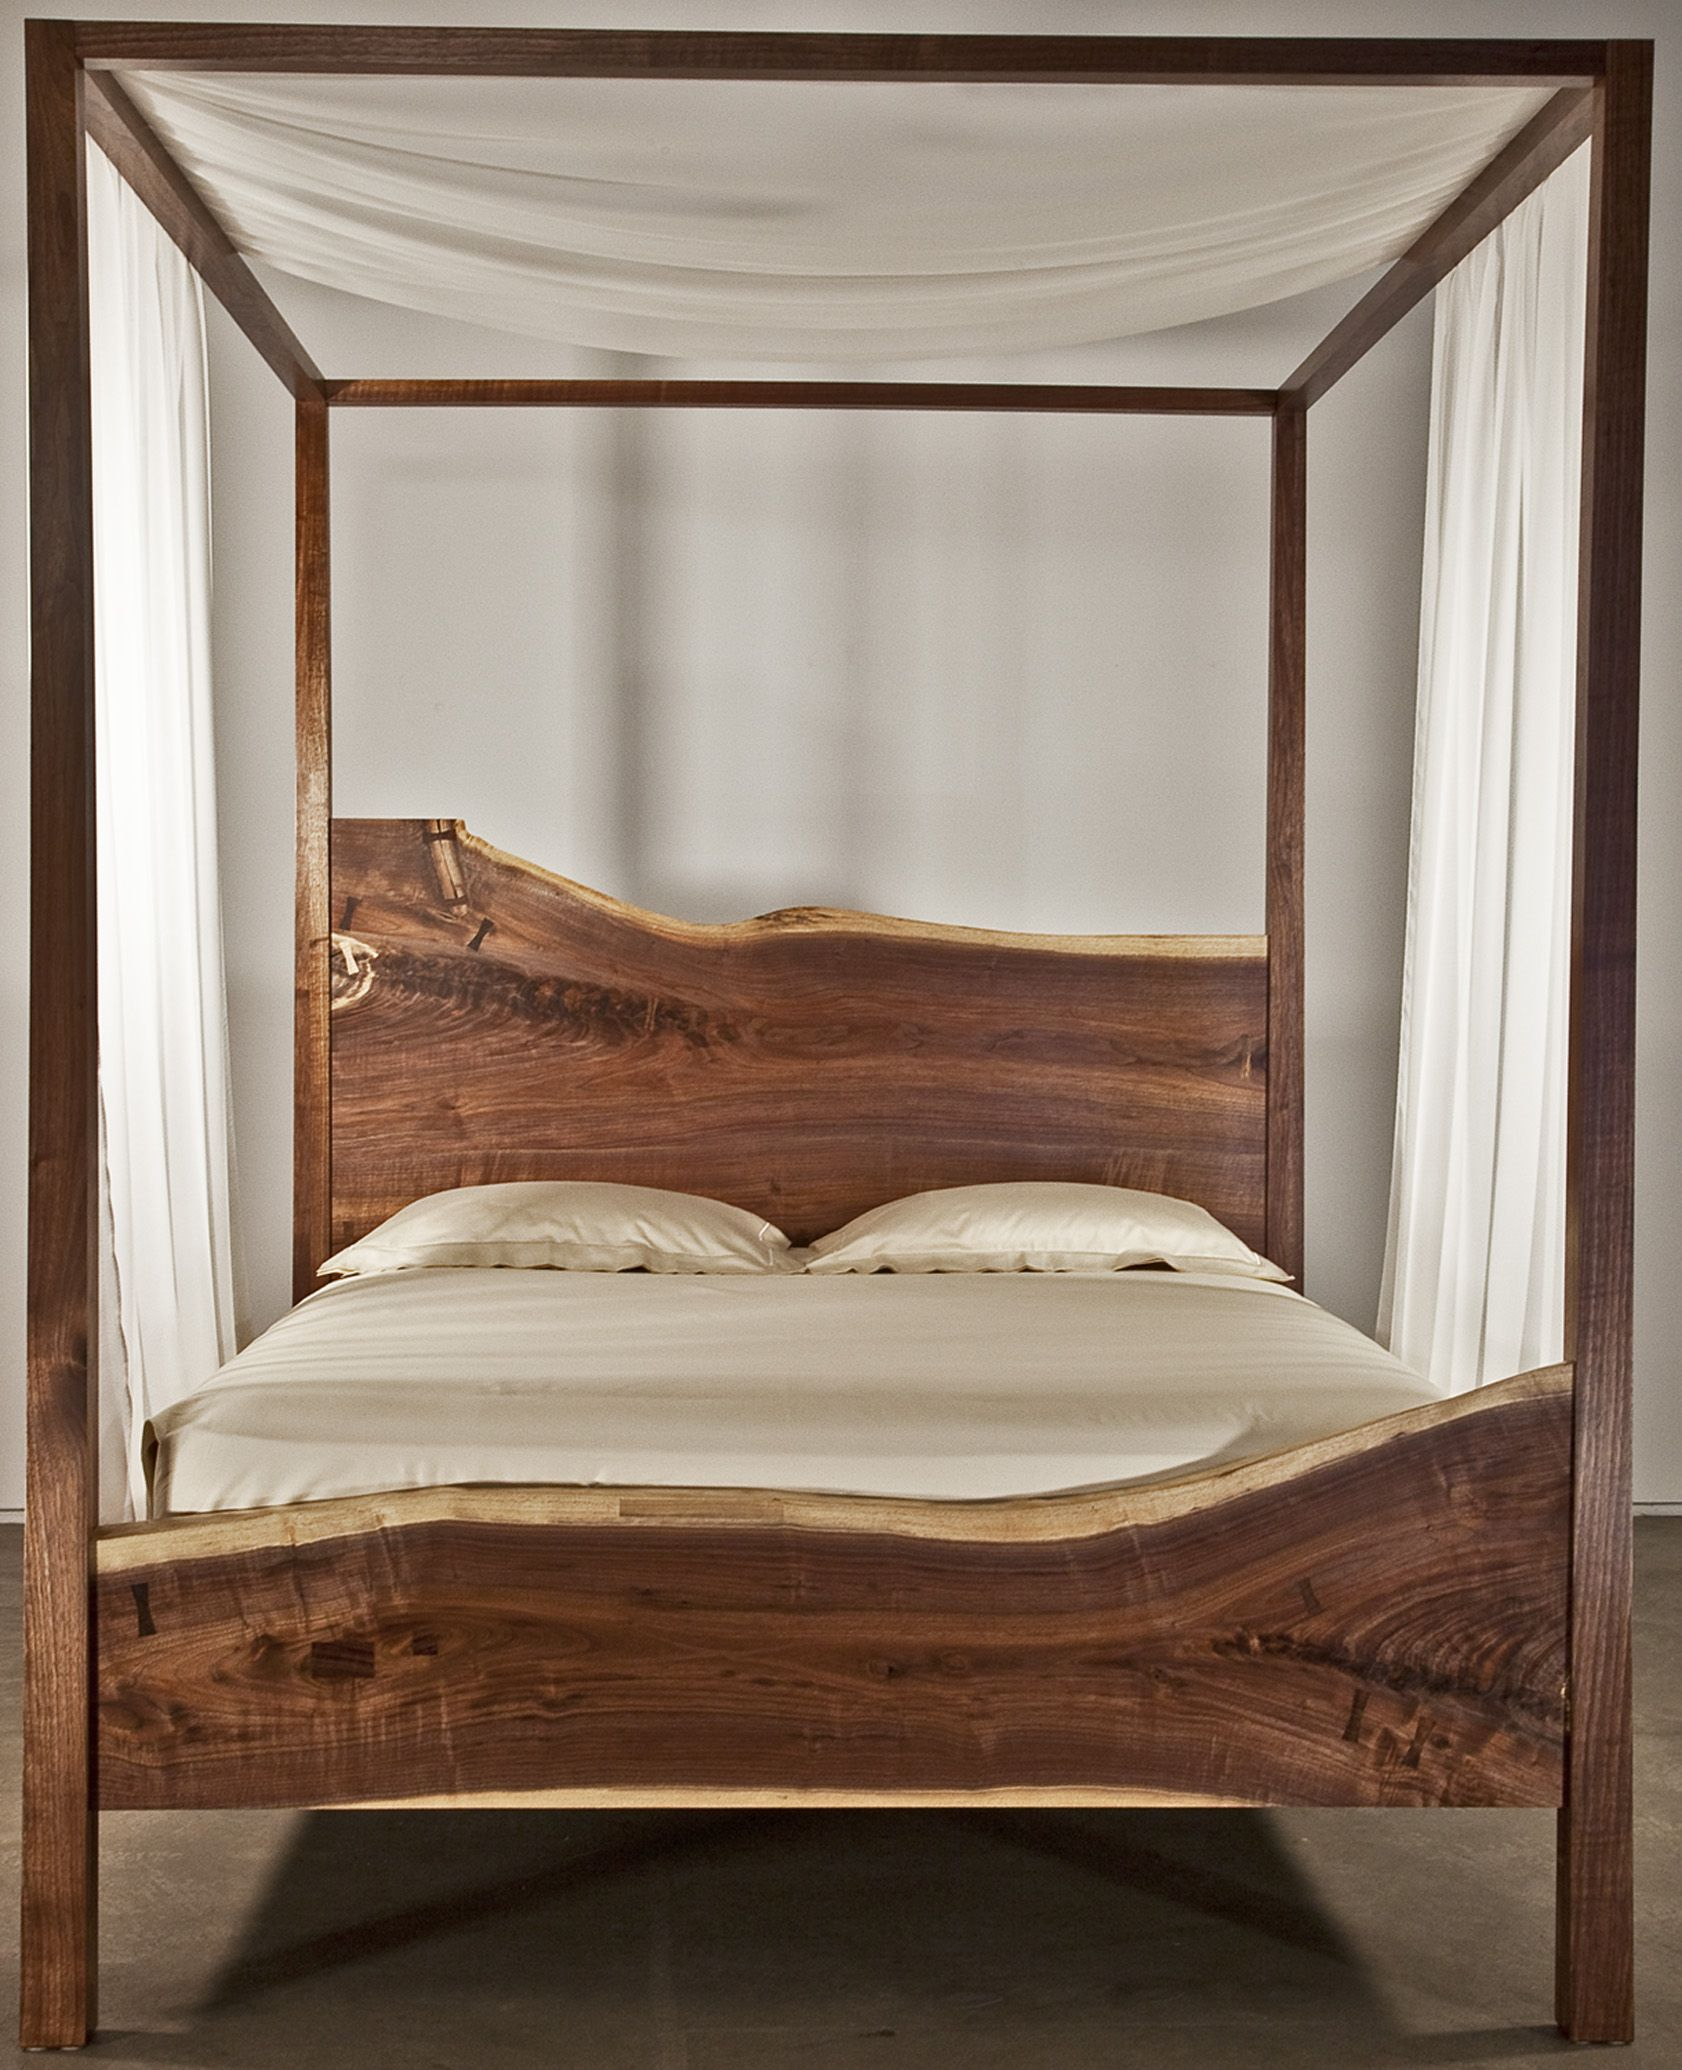 rough wooden bed frame